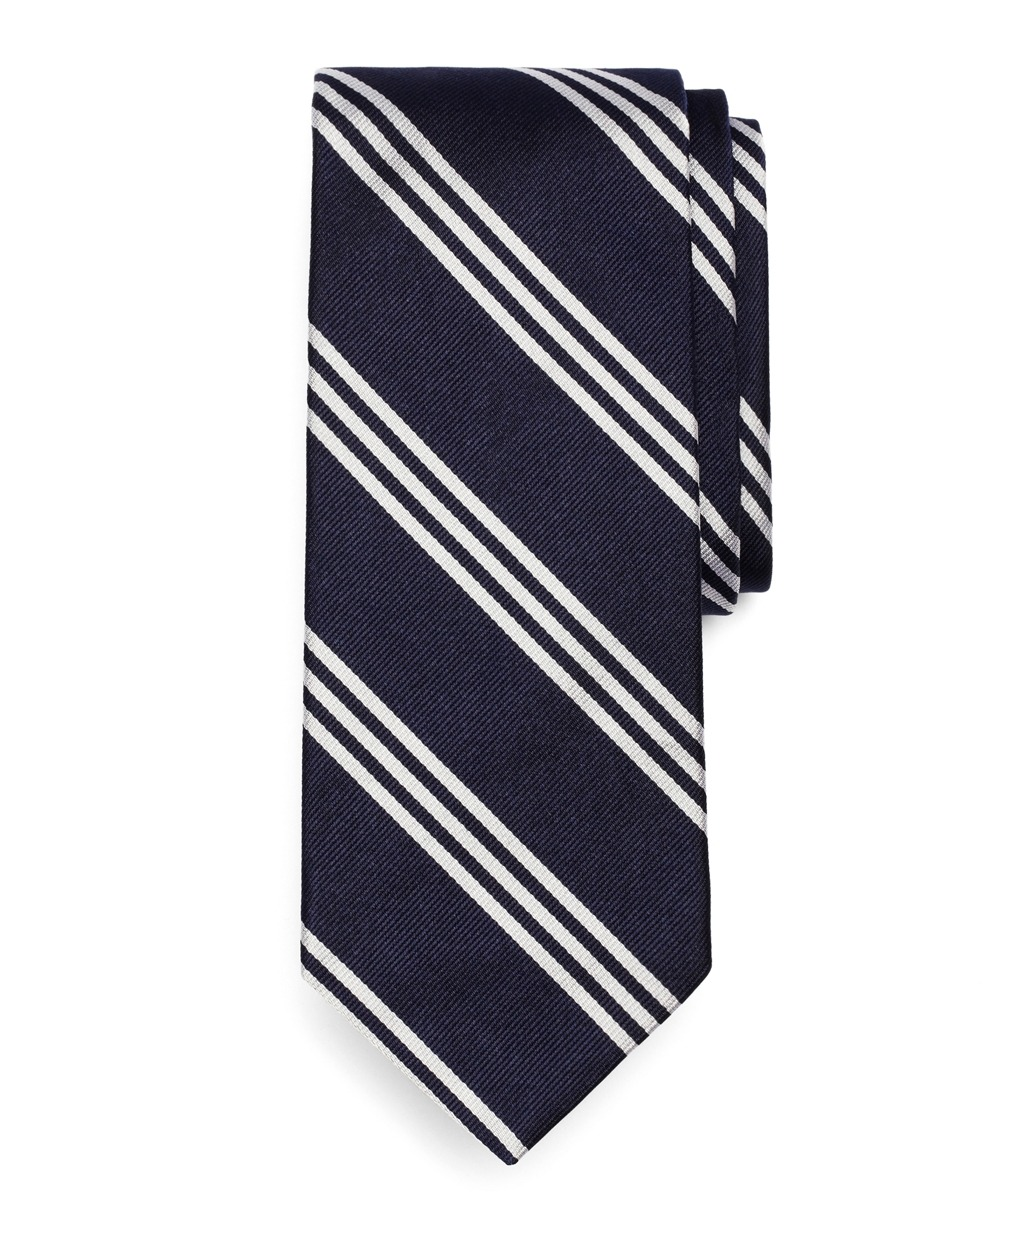 Navy BB #10 white stripe tie at Brooks Brothers